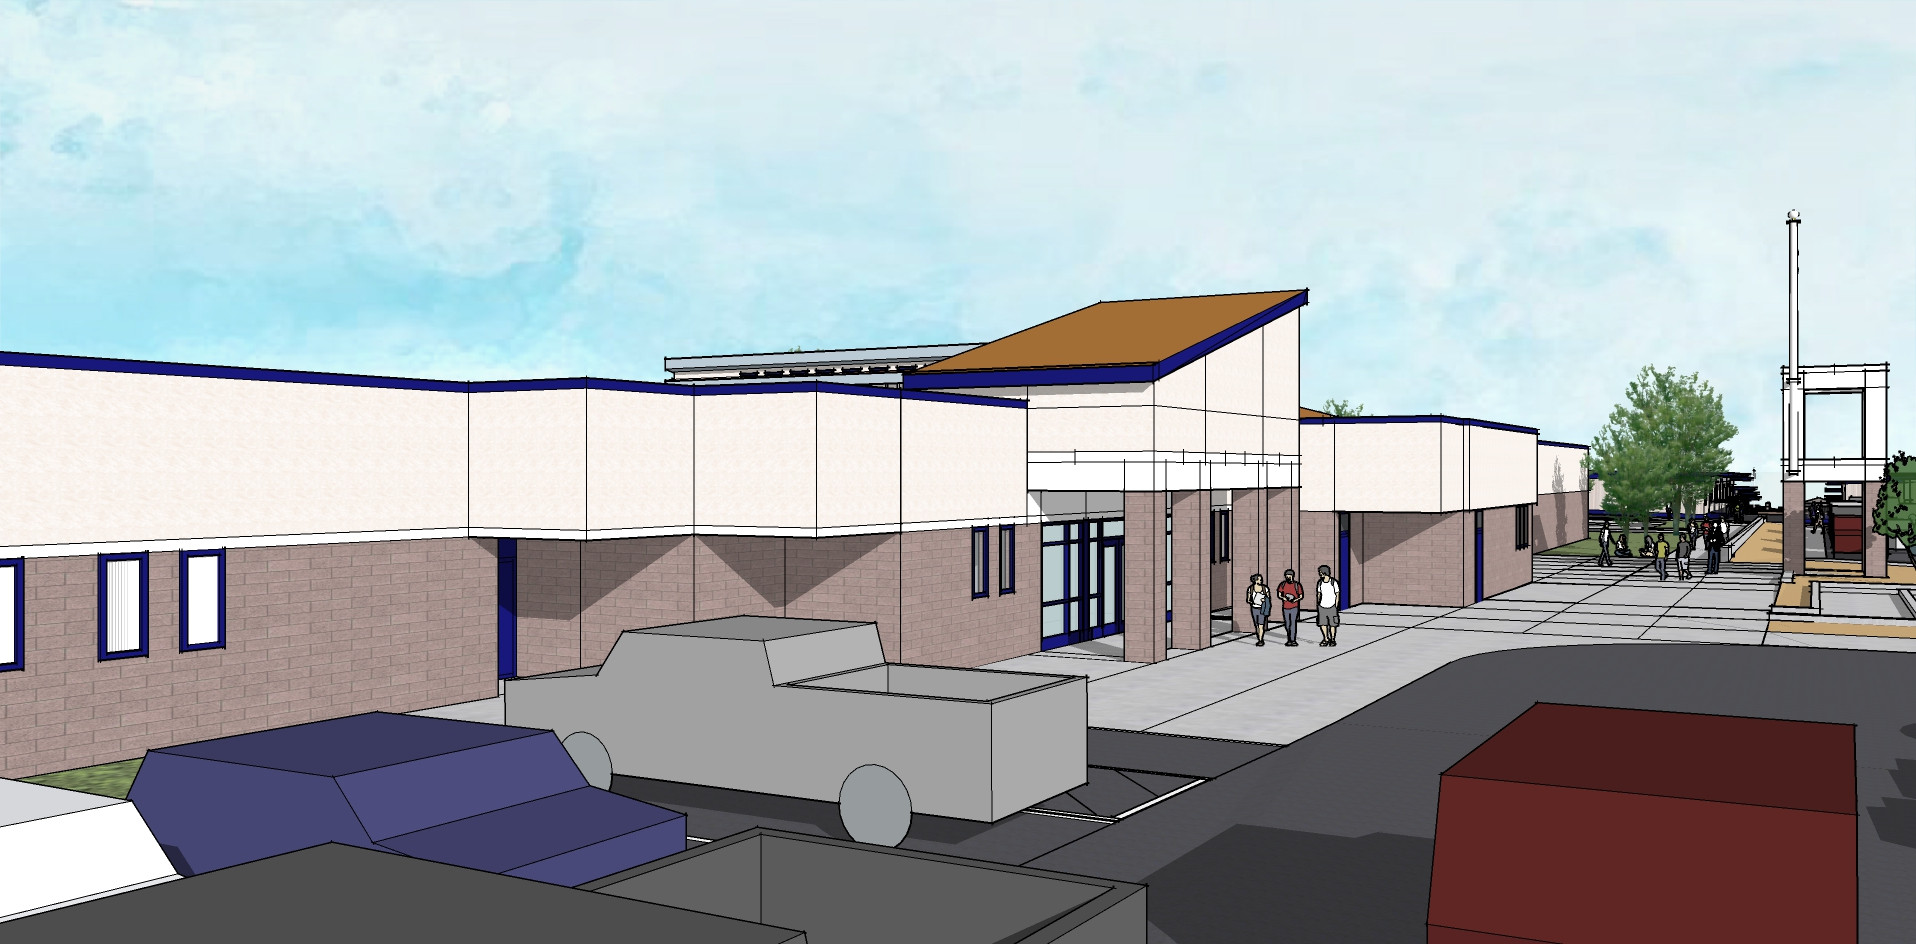 Additions and Renovations, Serrano High School